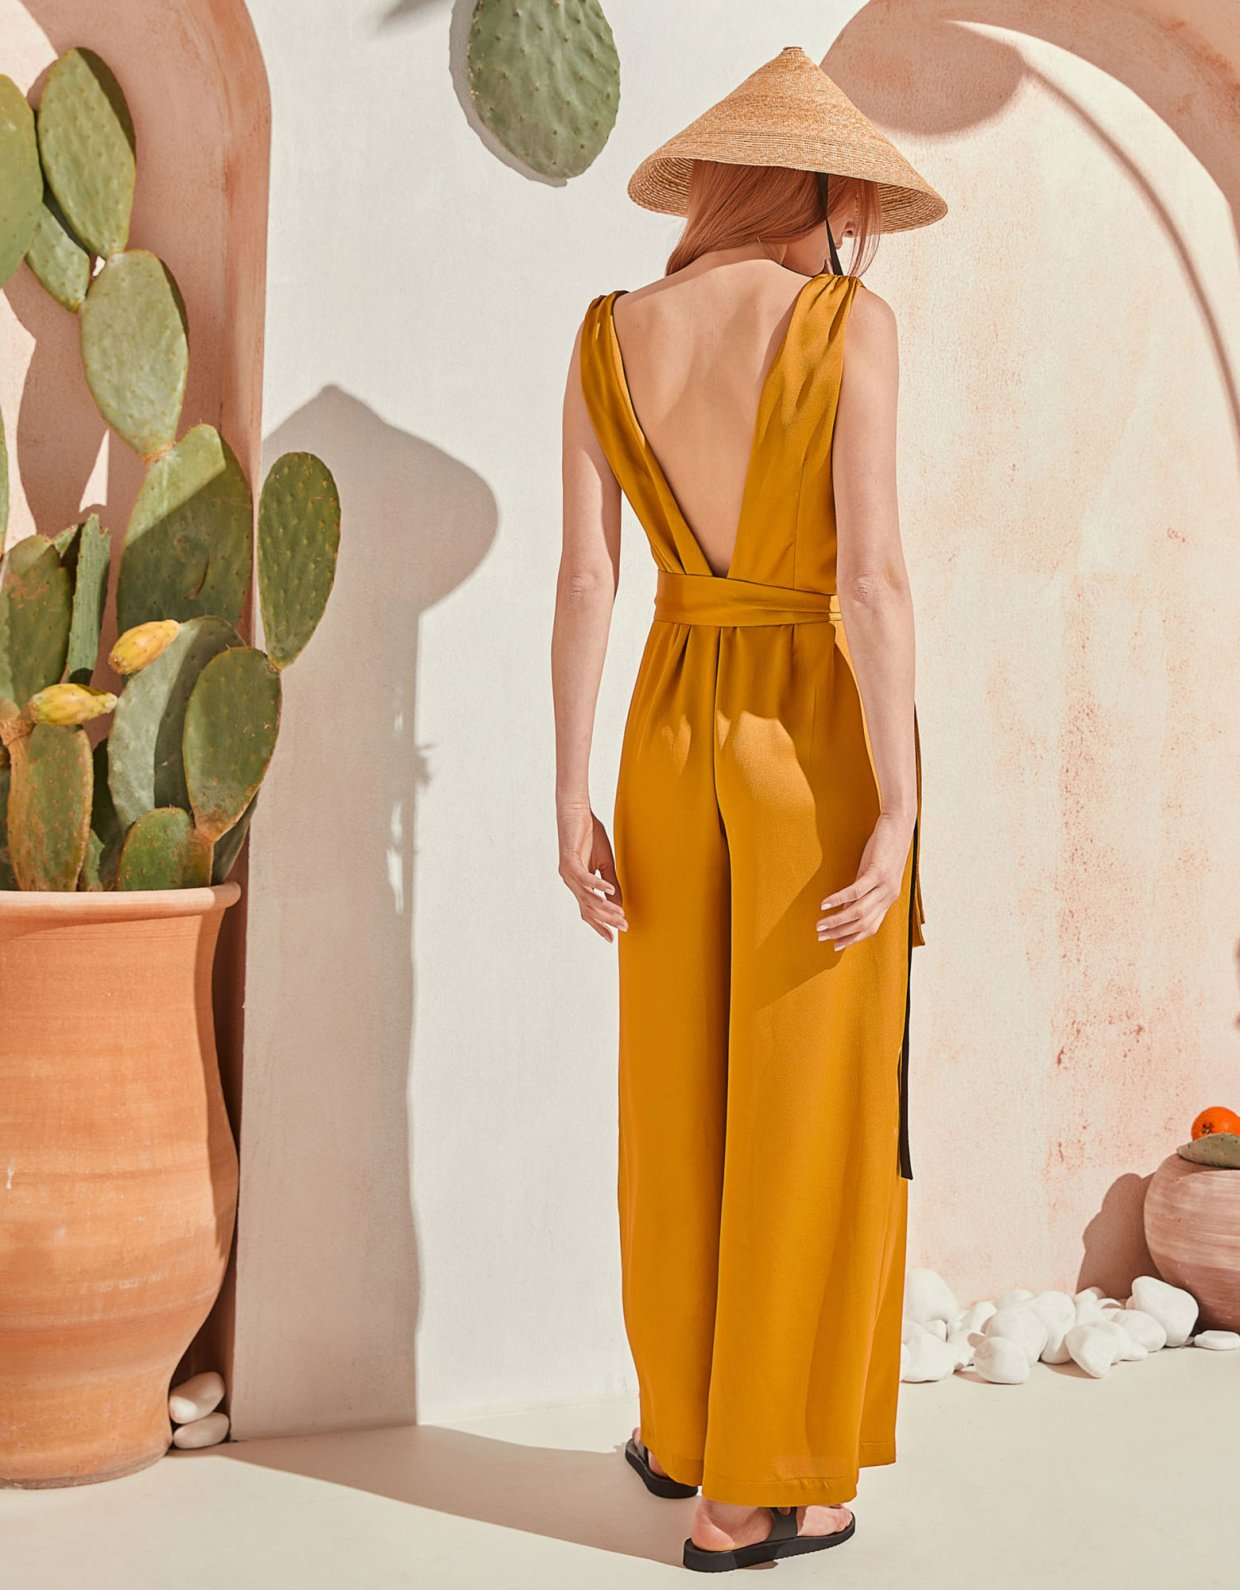 The Knl's Refeel jumpsuit aspen gold